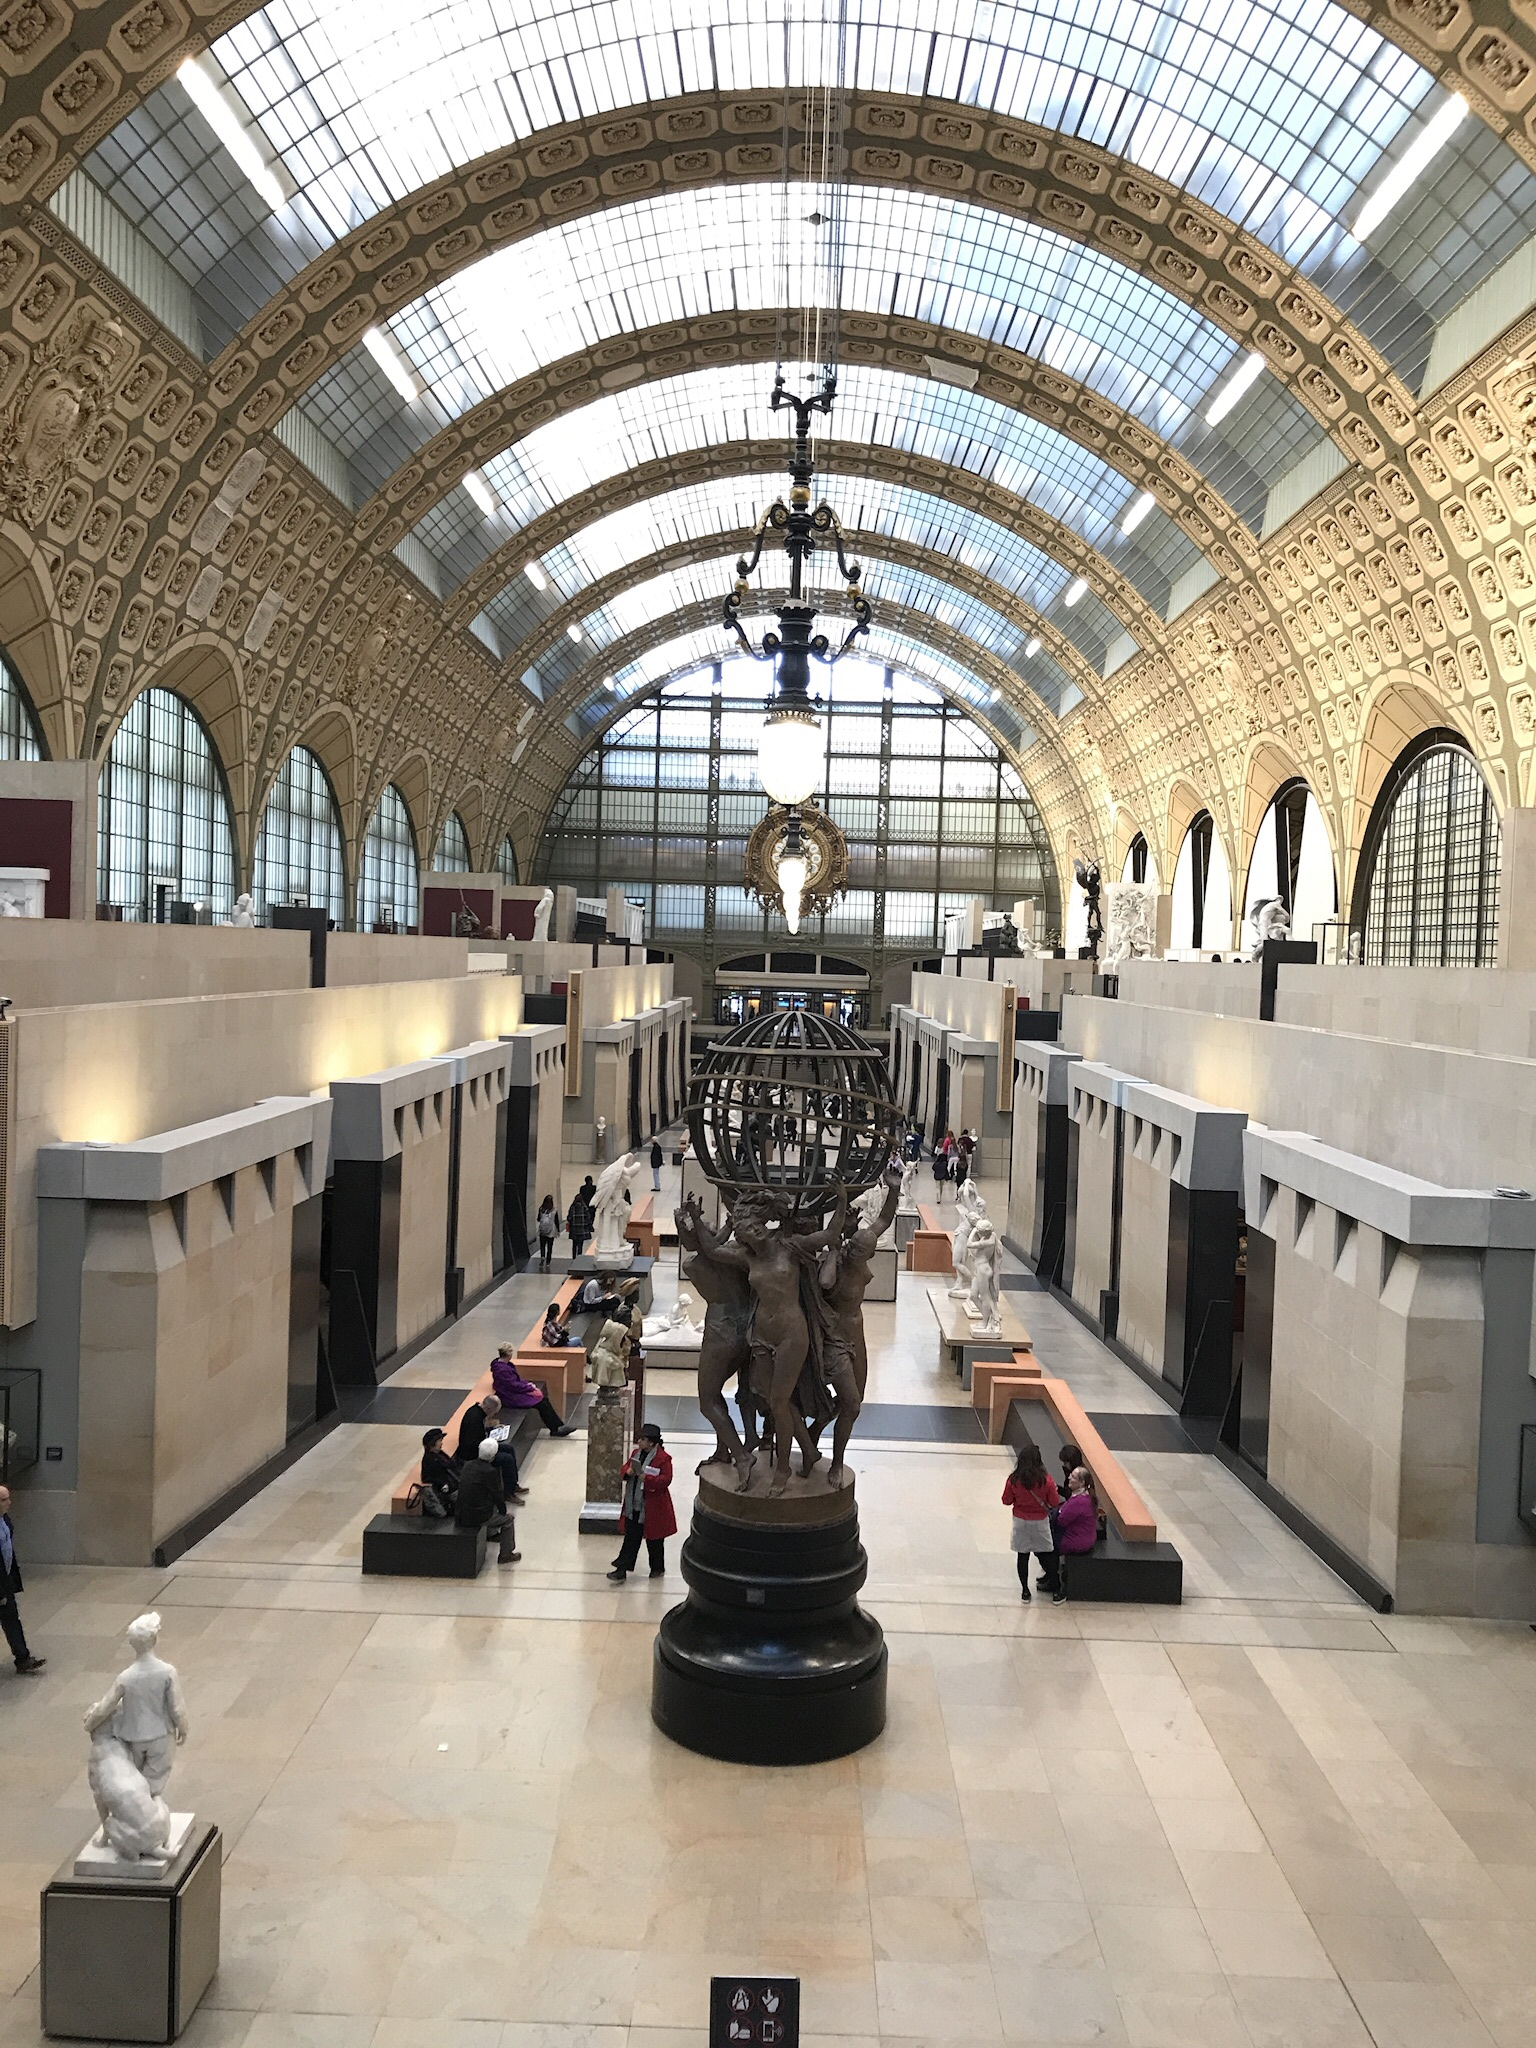 Musèe d'Orsay's hall was originally a train station and platform. The building was preserved and converted to this extraordinary museum.